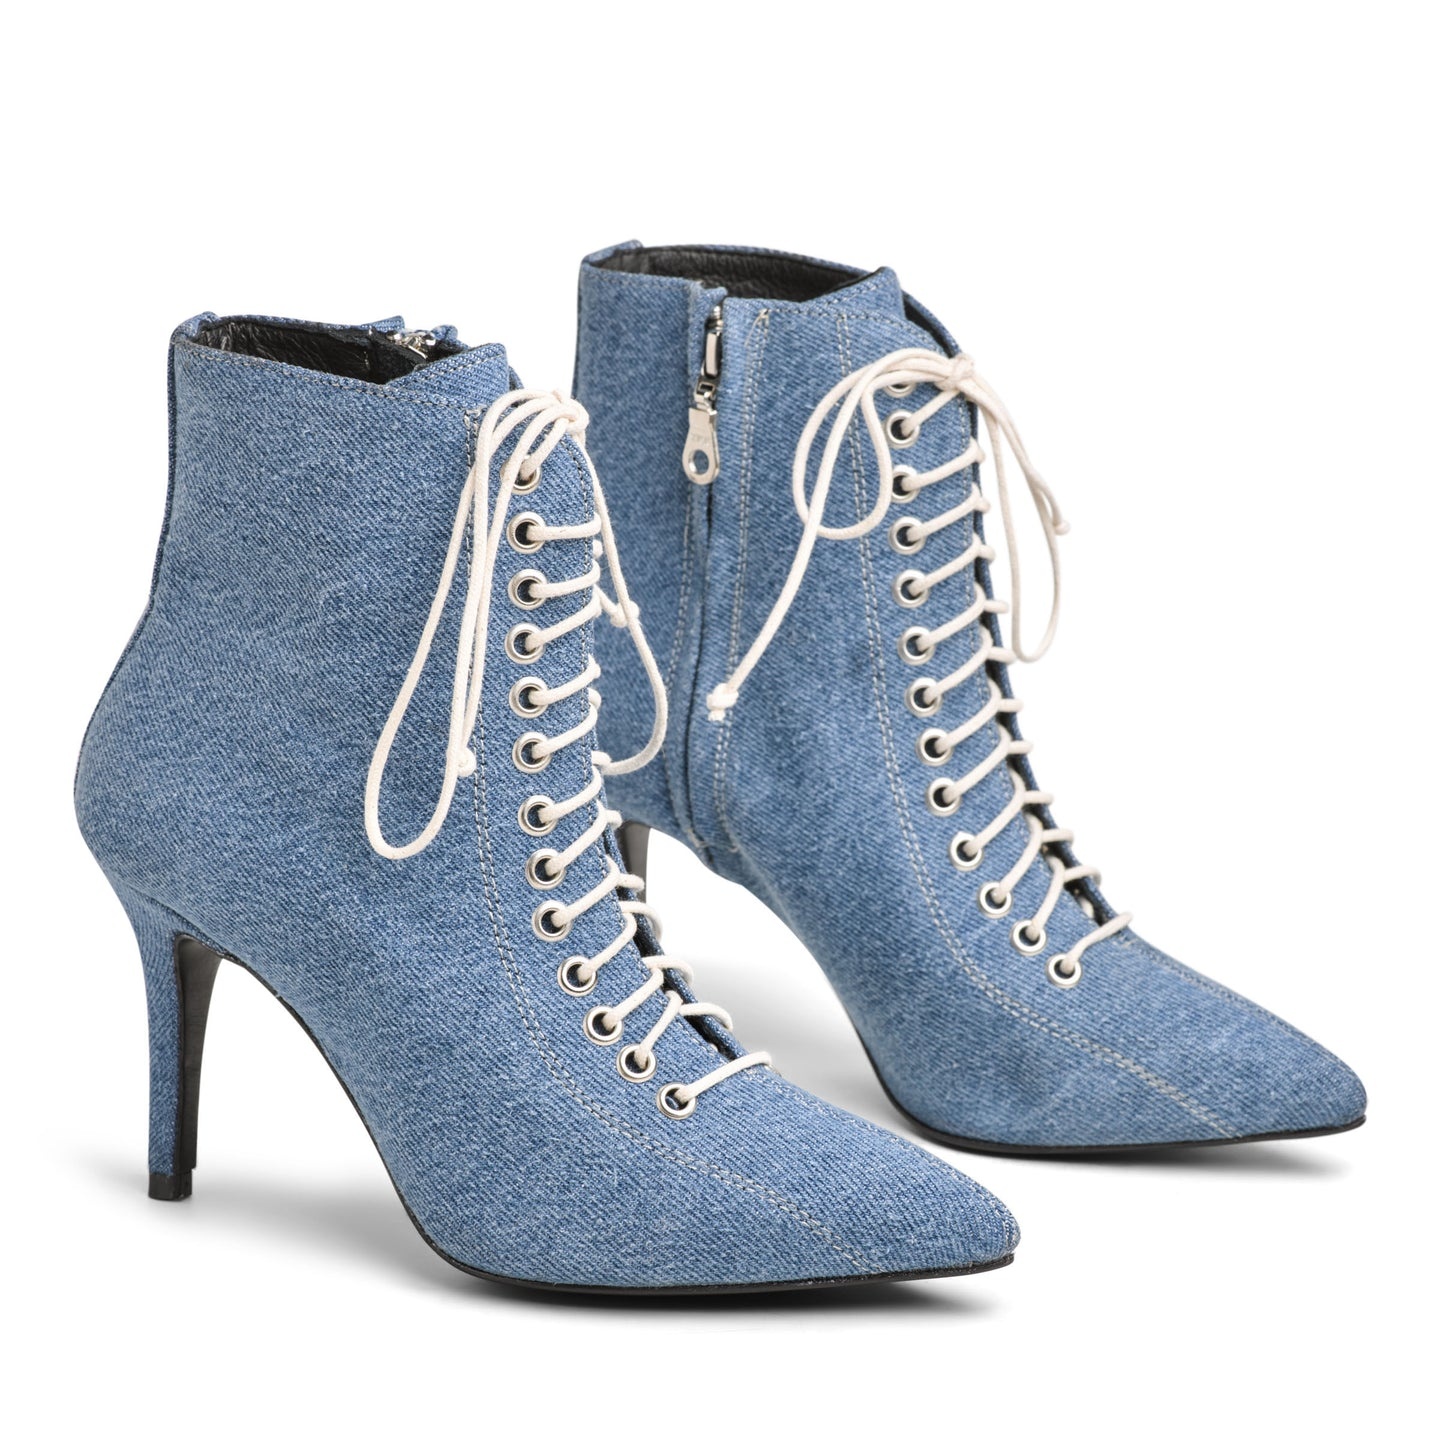 The Delancey Boot - Denim